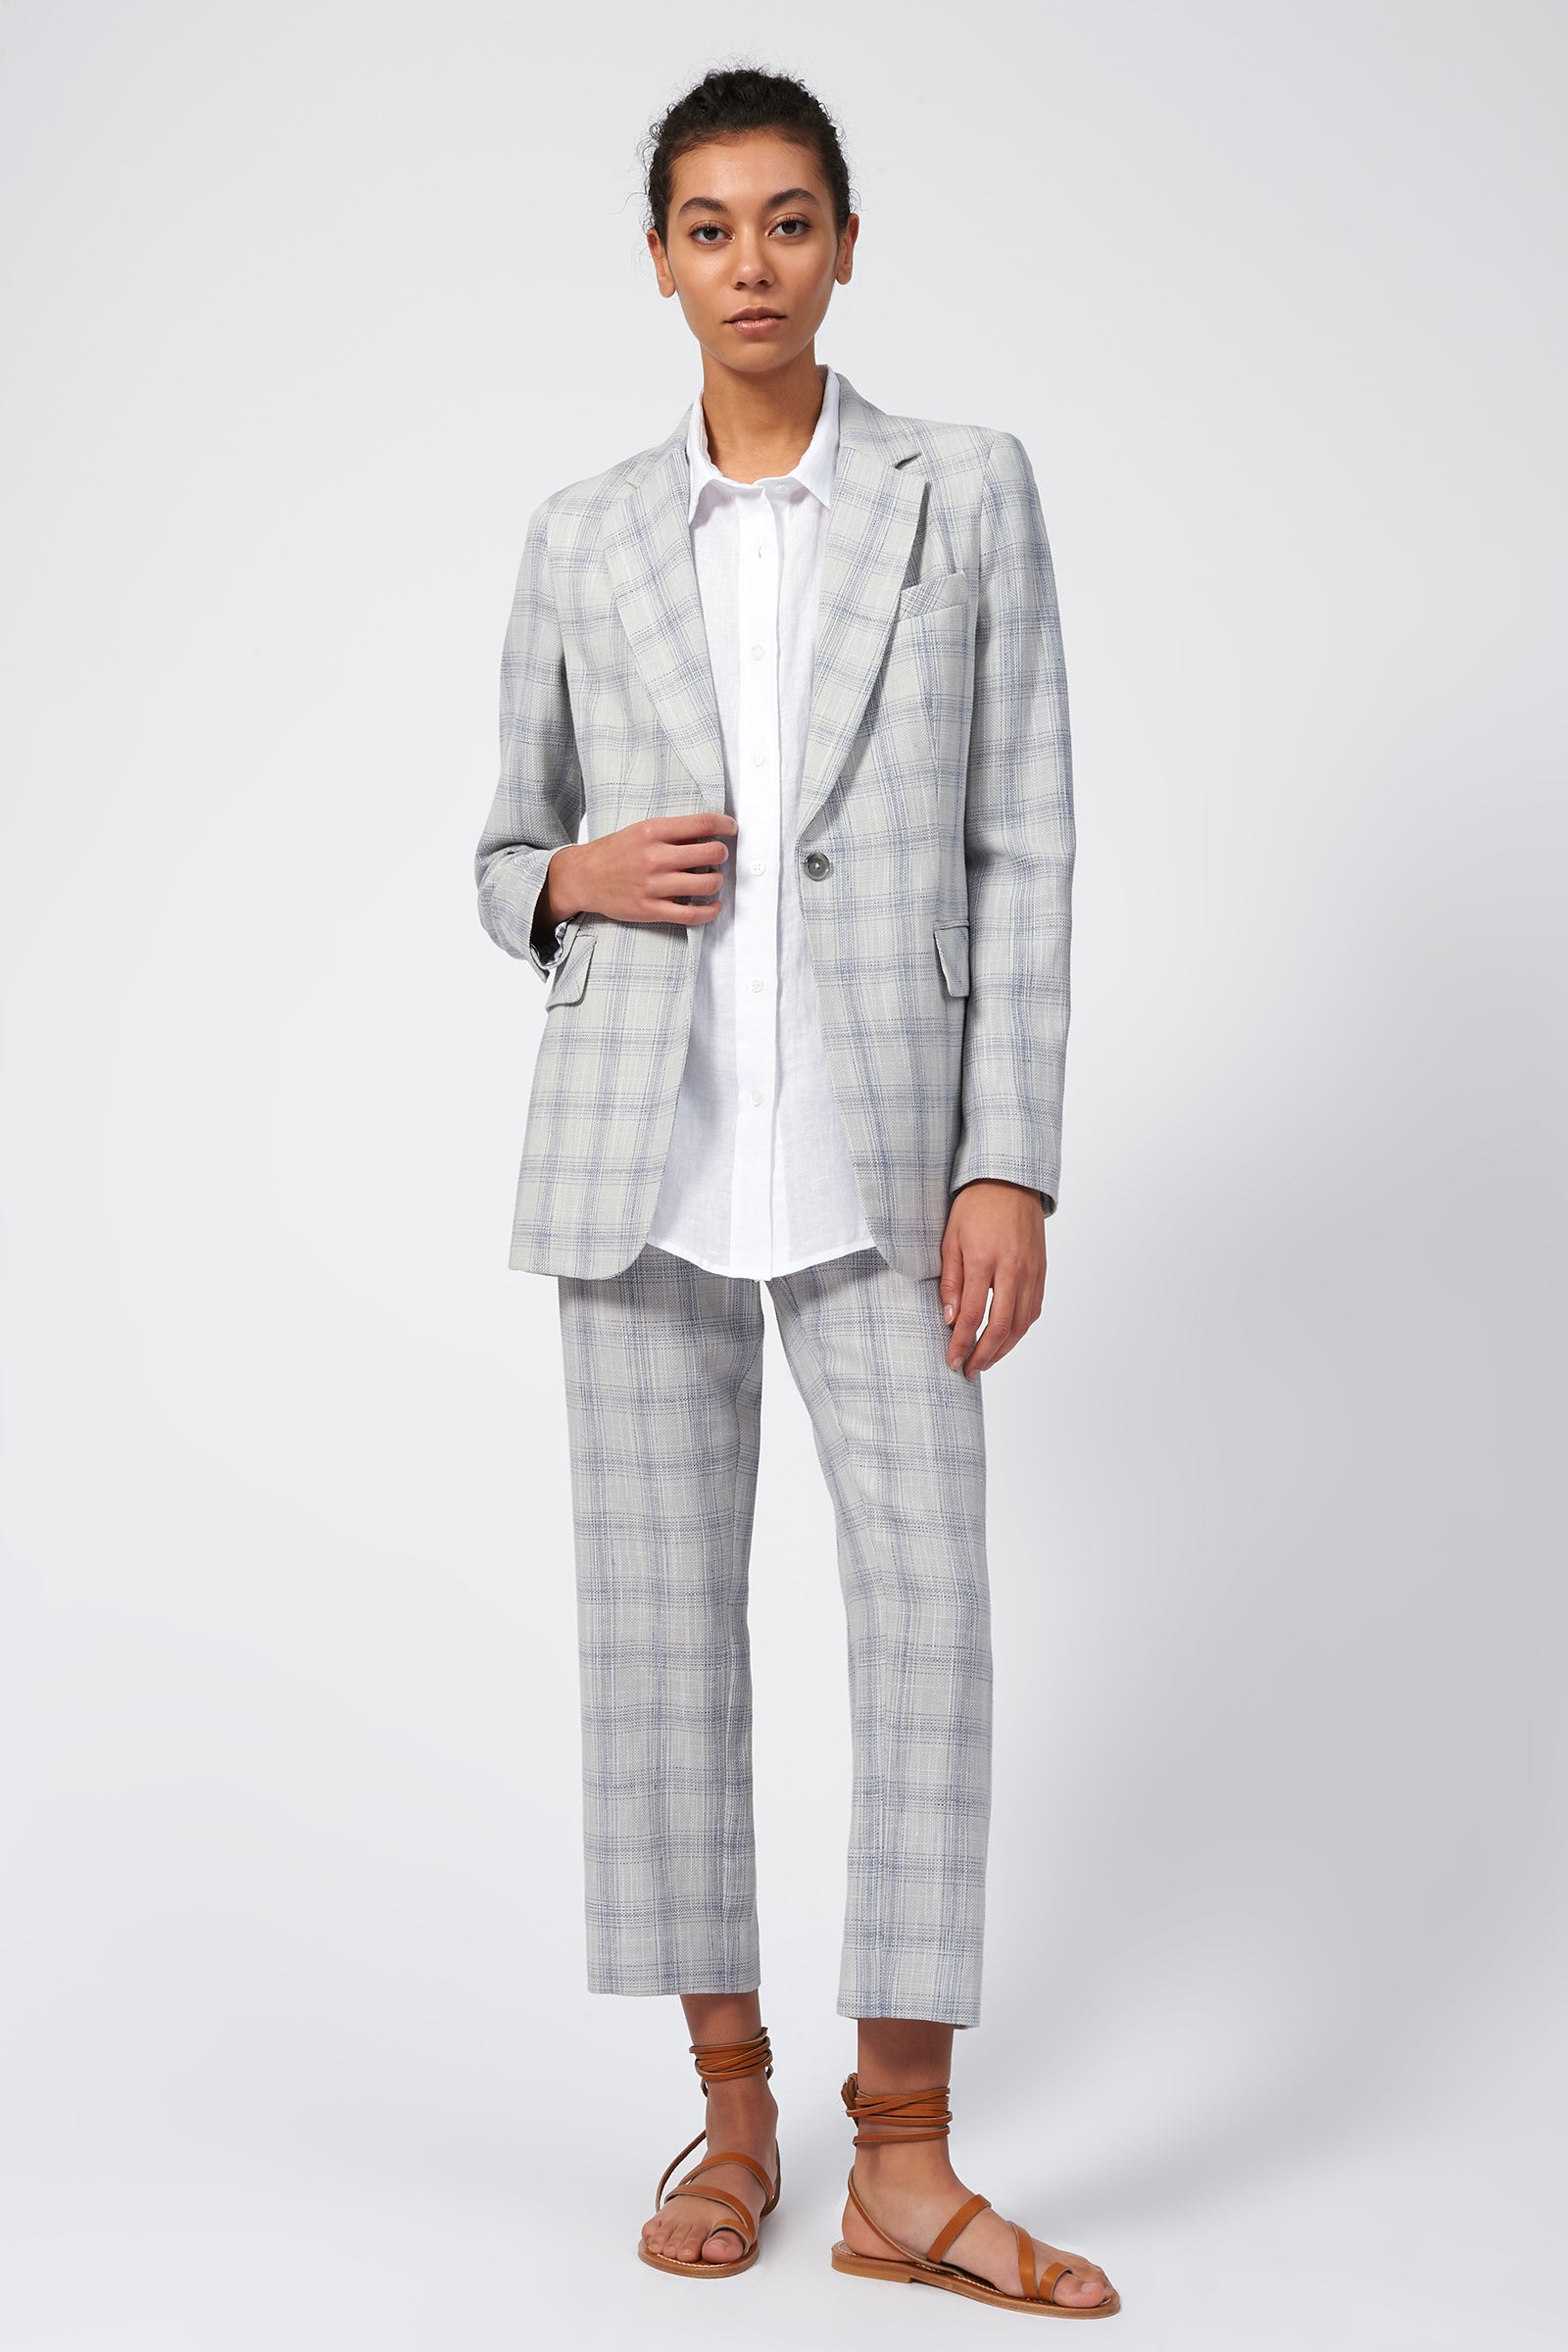 Kal Rieman Classic Notch Blazer in Glen Plaid on Model Full Front View